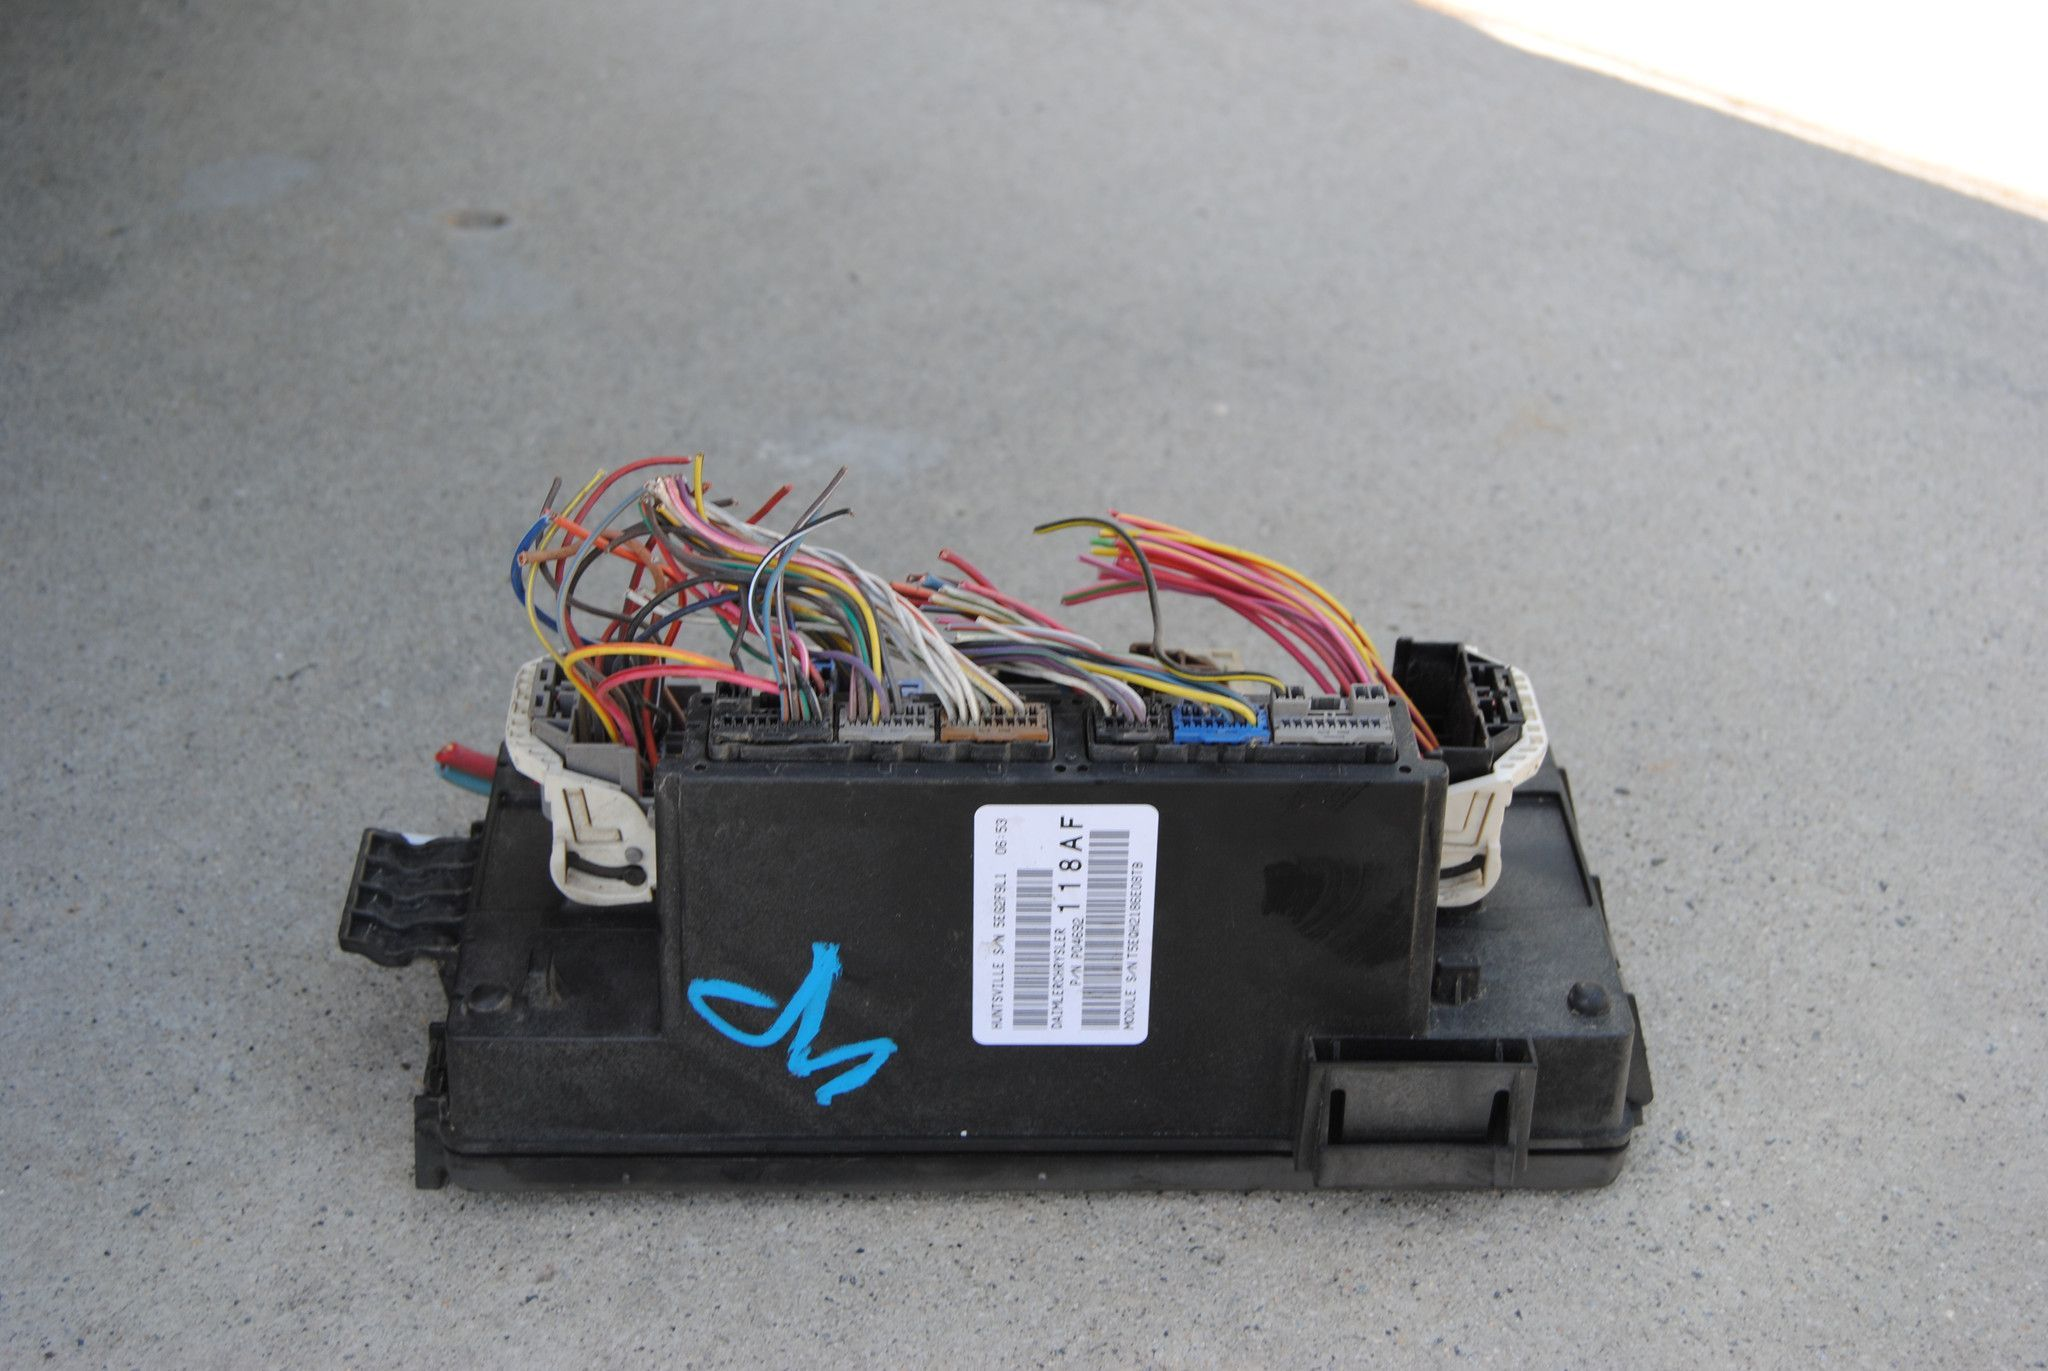 07 dodge ram tipm totally integrated power module relay fuse box rh pinterest com Breaker Box Wiring Breaker Box Wiring